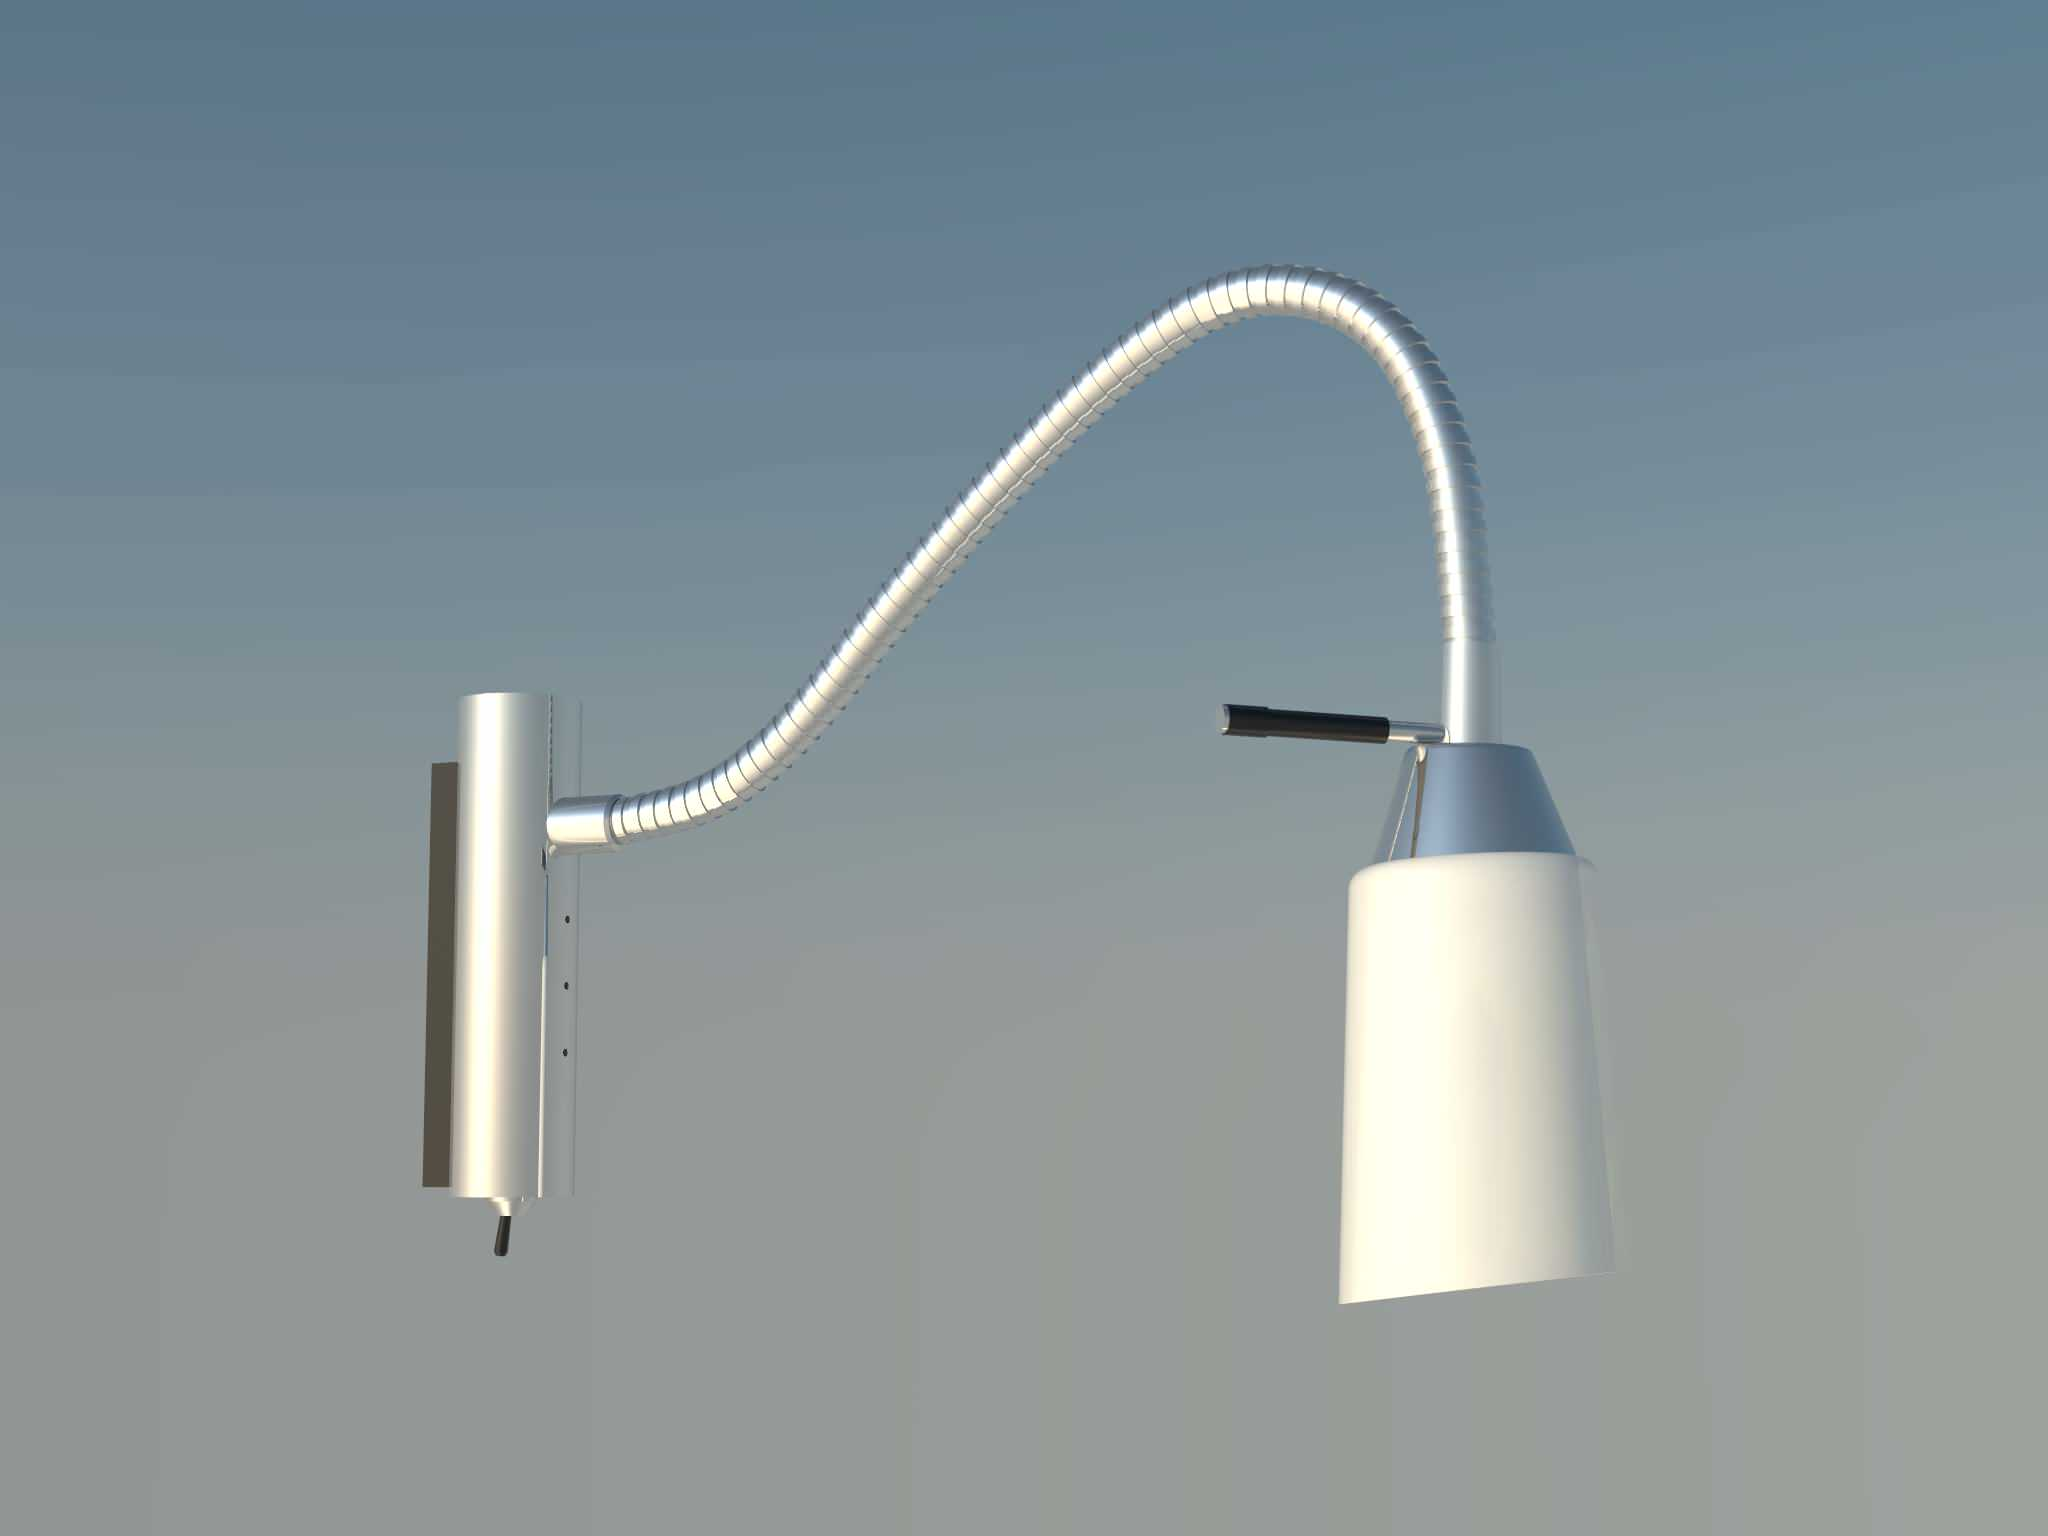 reading wall lamp 3D Model .skp - CGTrader.com